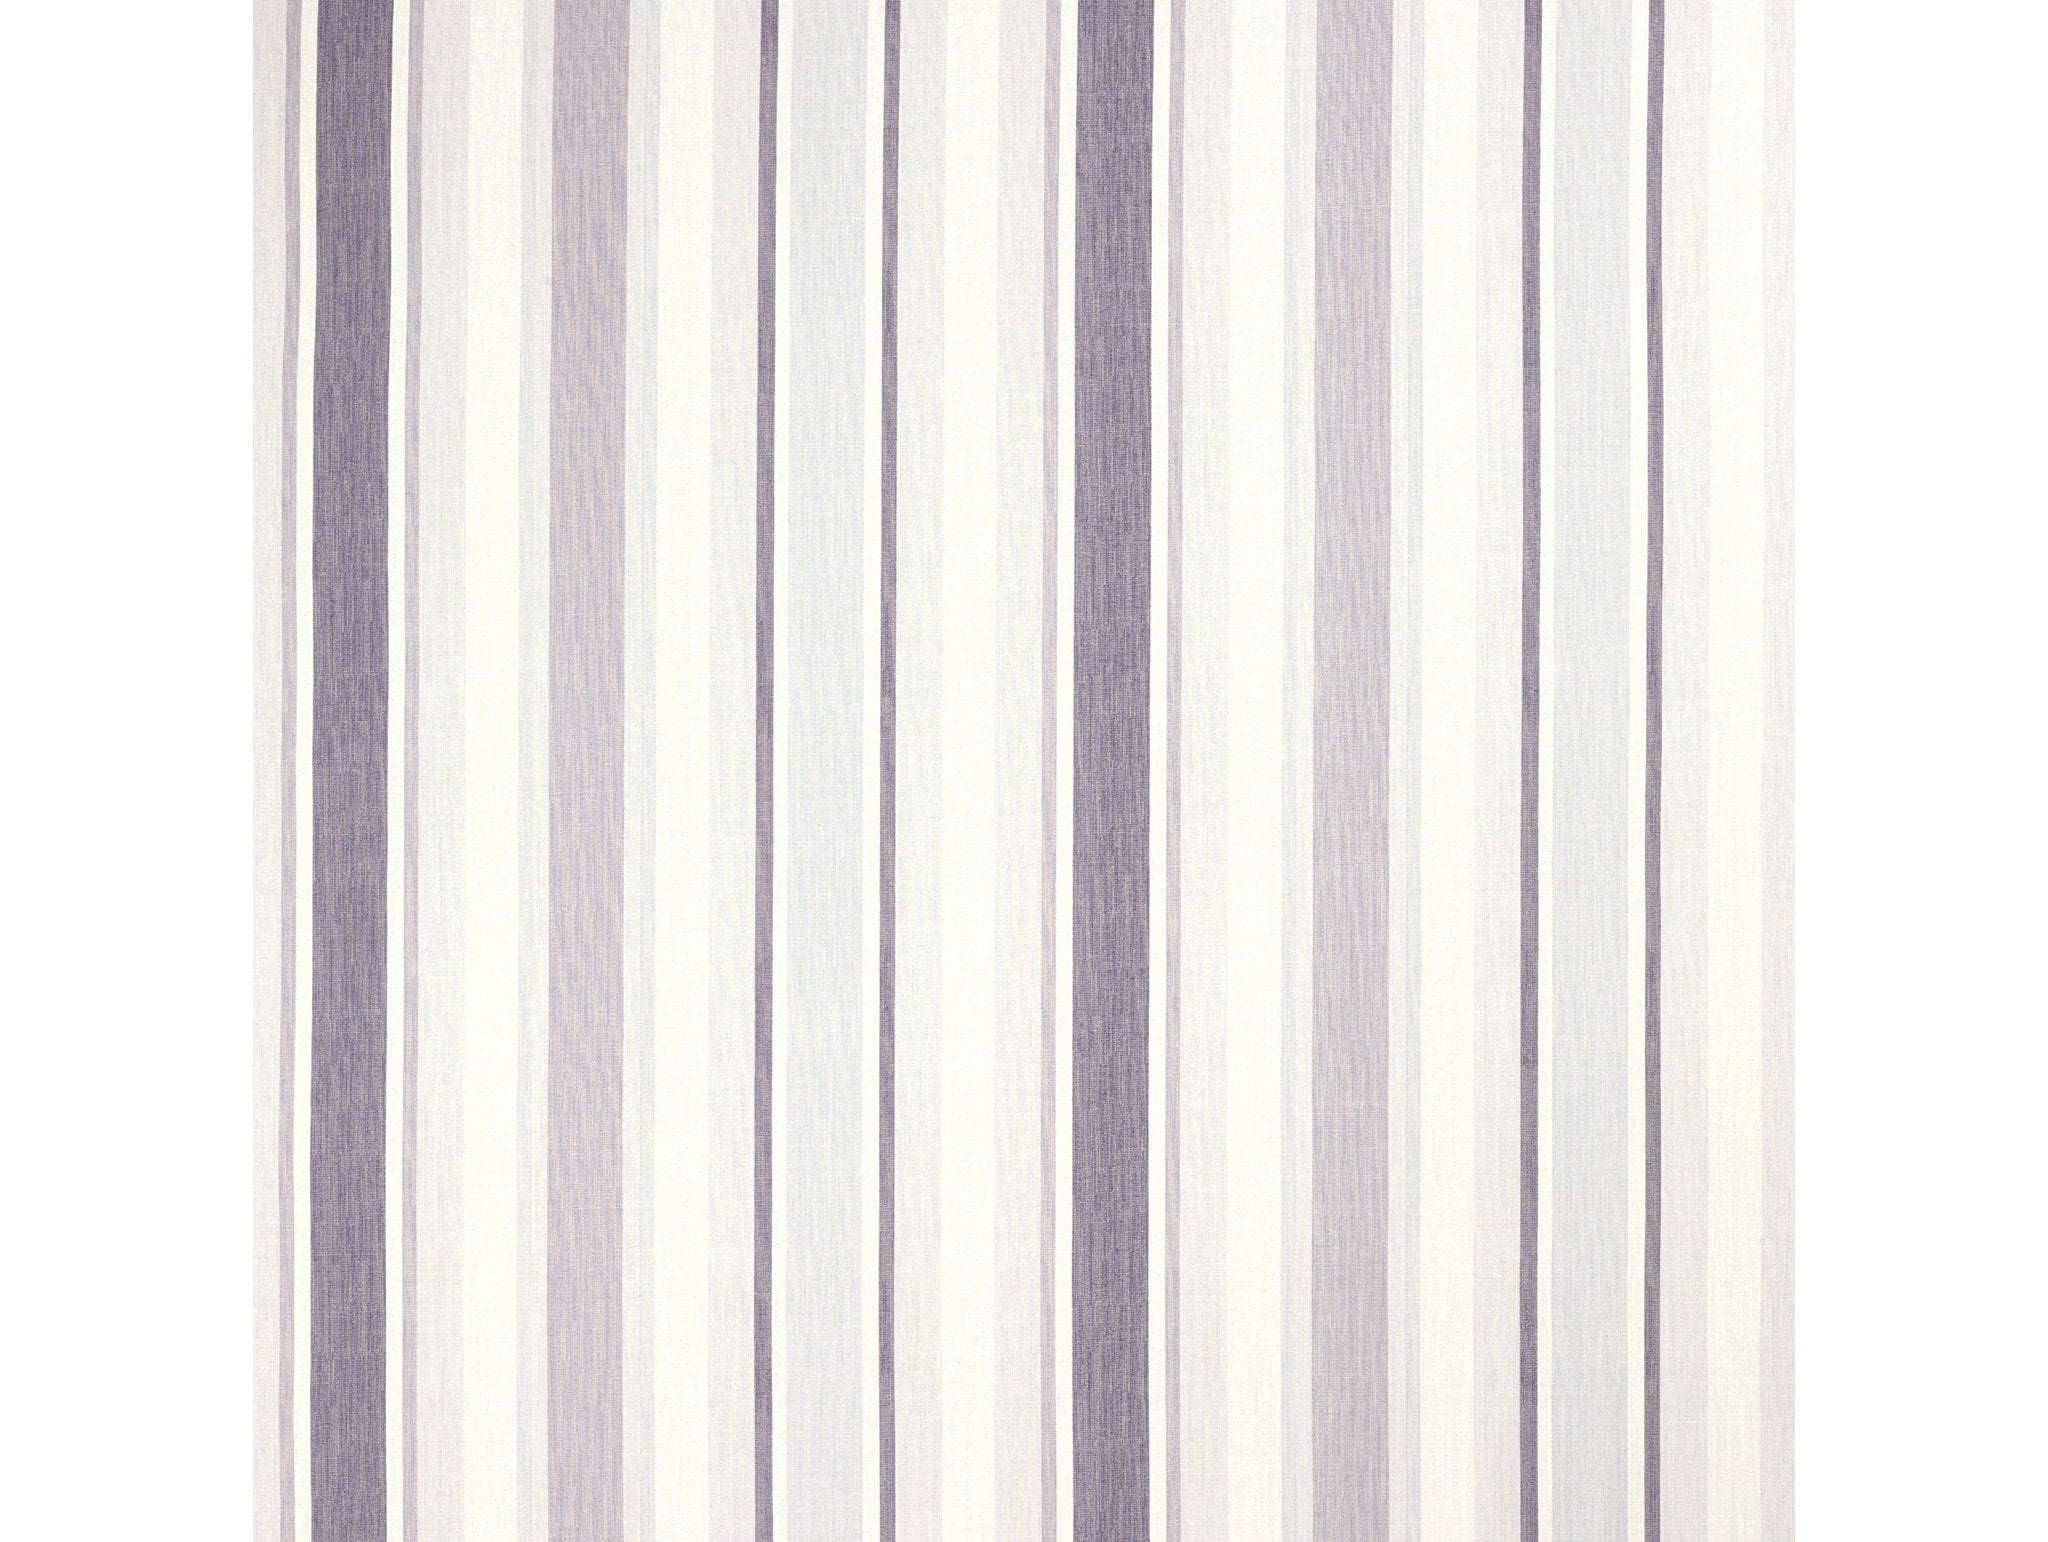 Ύφασμα Awning Stripe Pale Iris